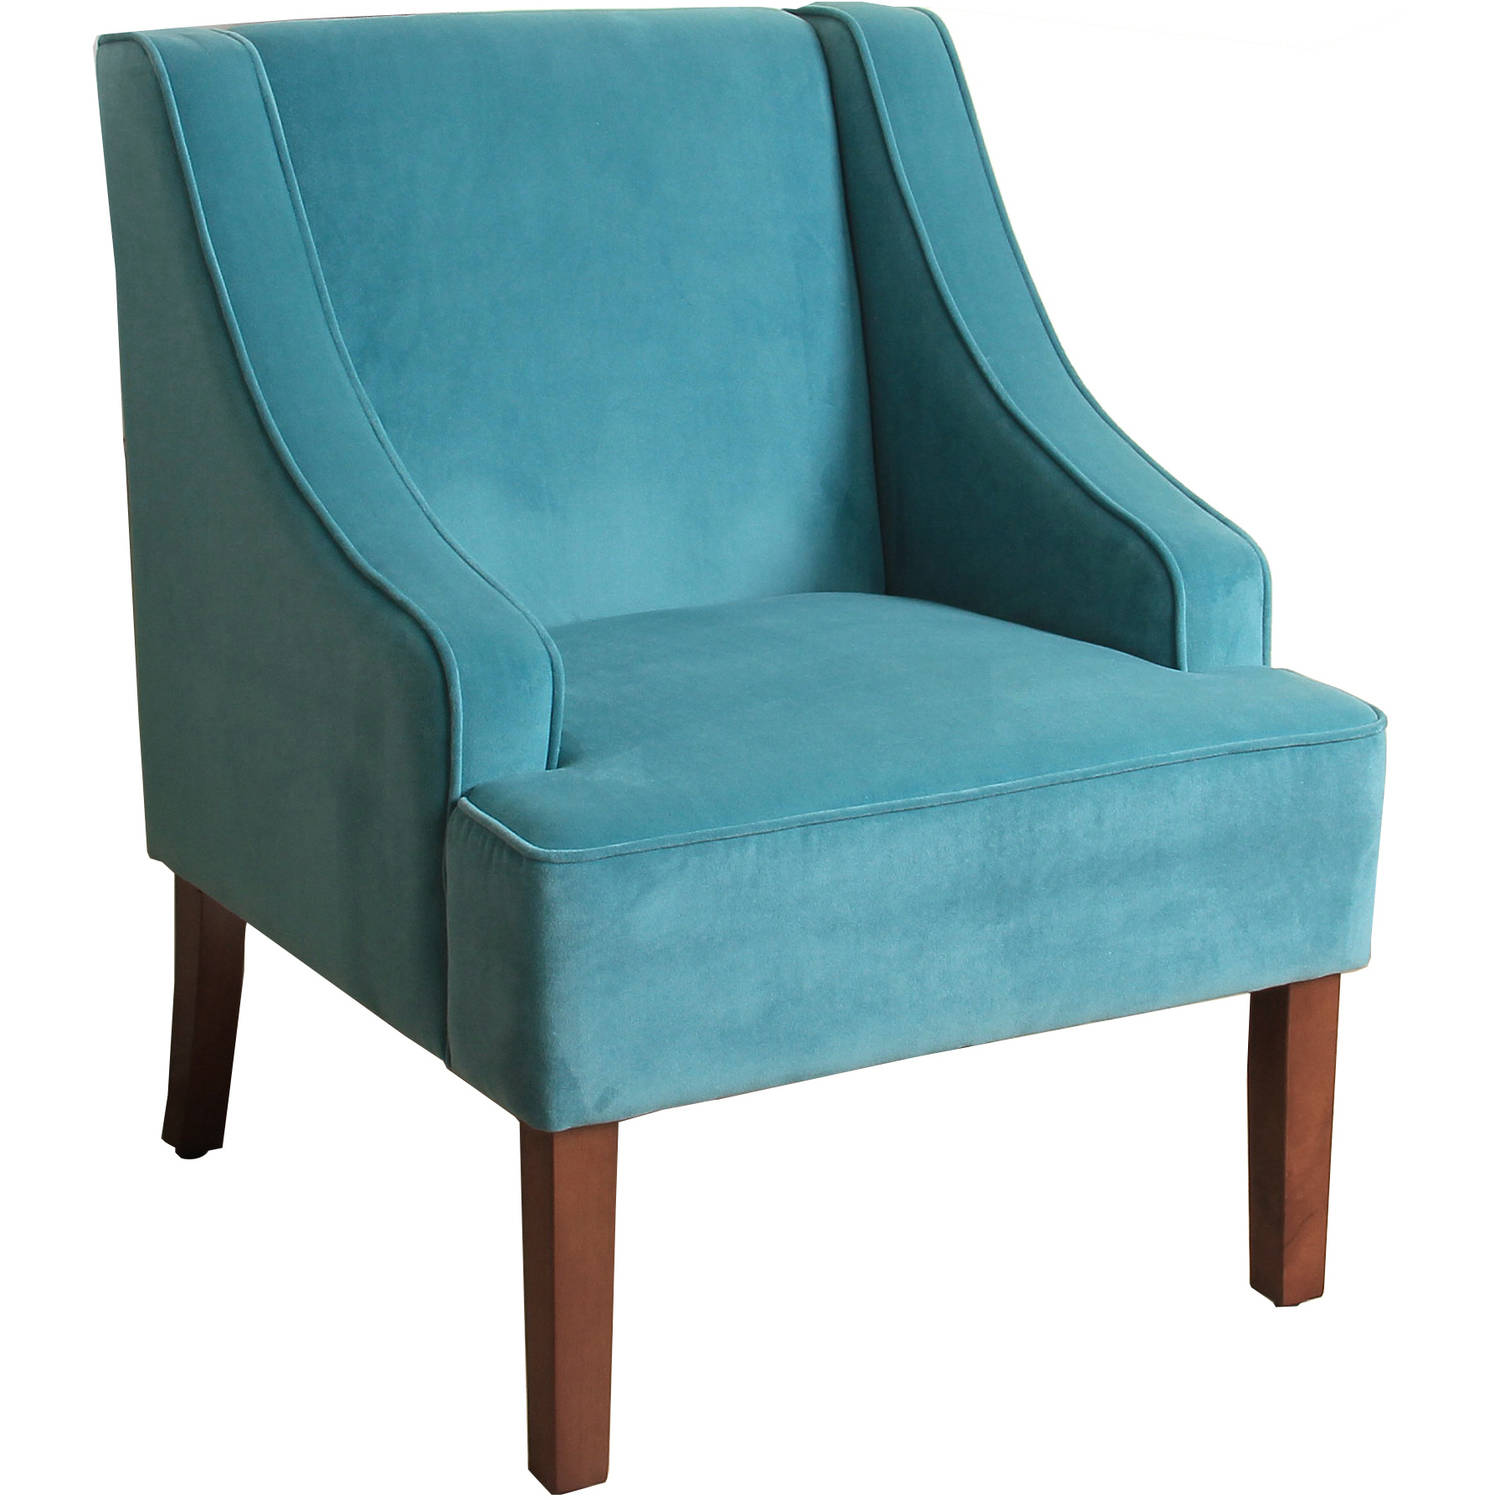 Fine Swoop Arm Accent Chair: HomePop Classic Swoop Arm Accent Chair, Multiple Colors